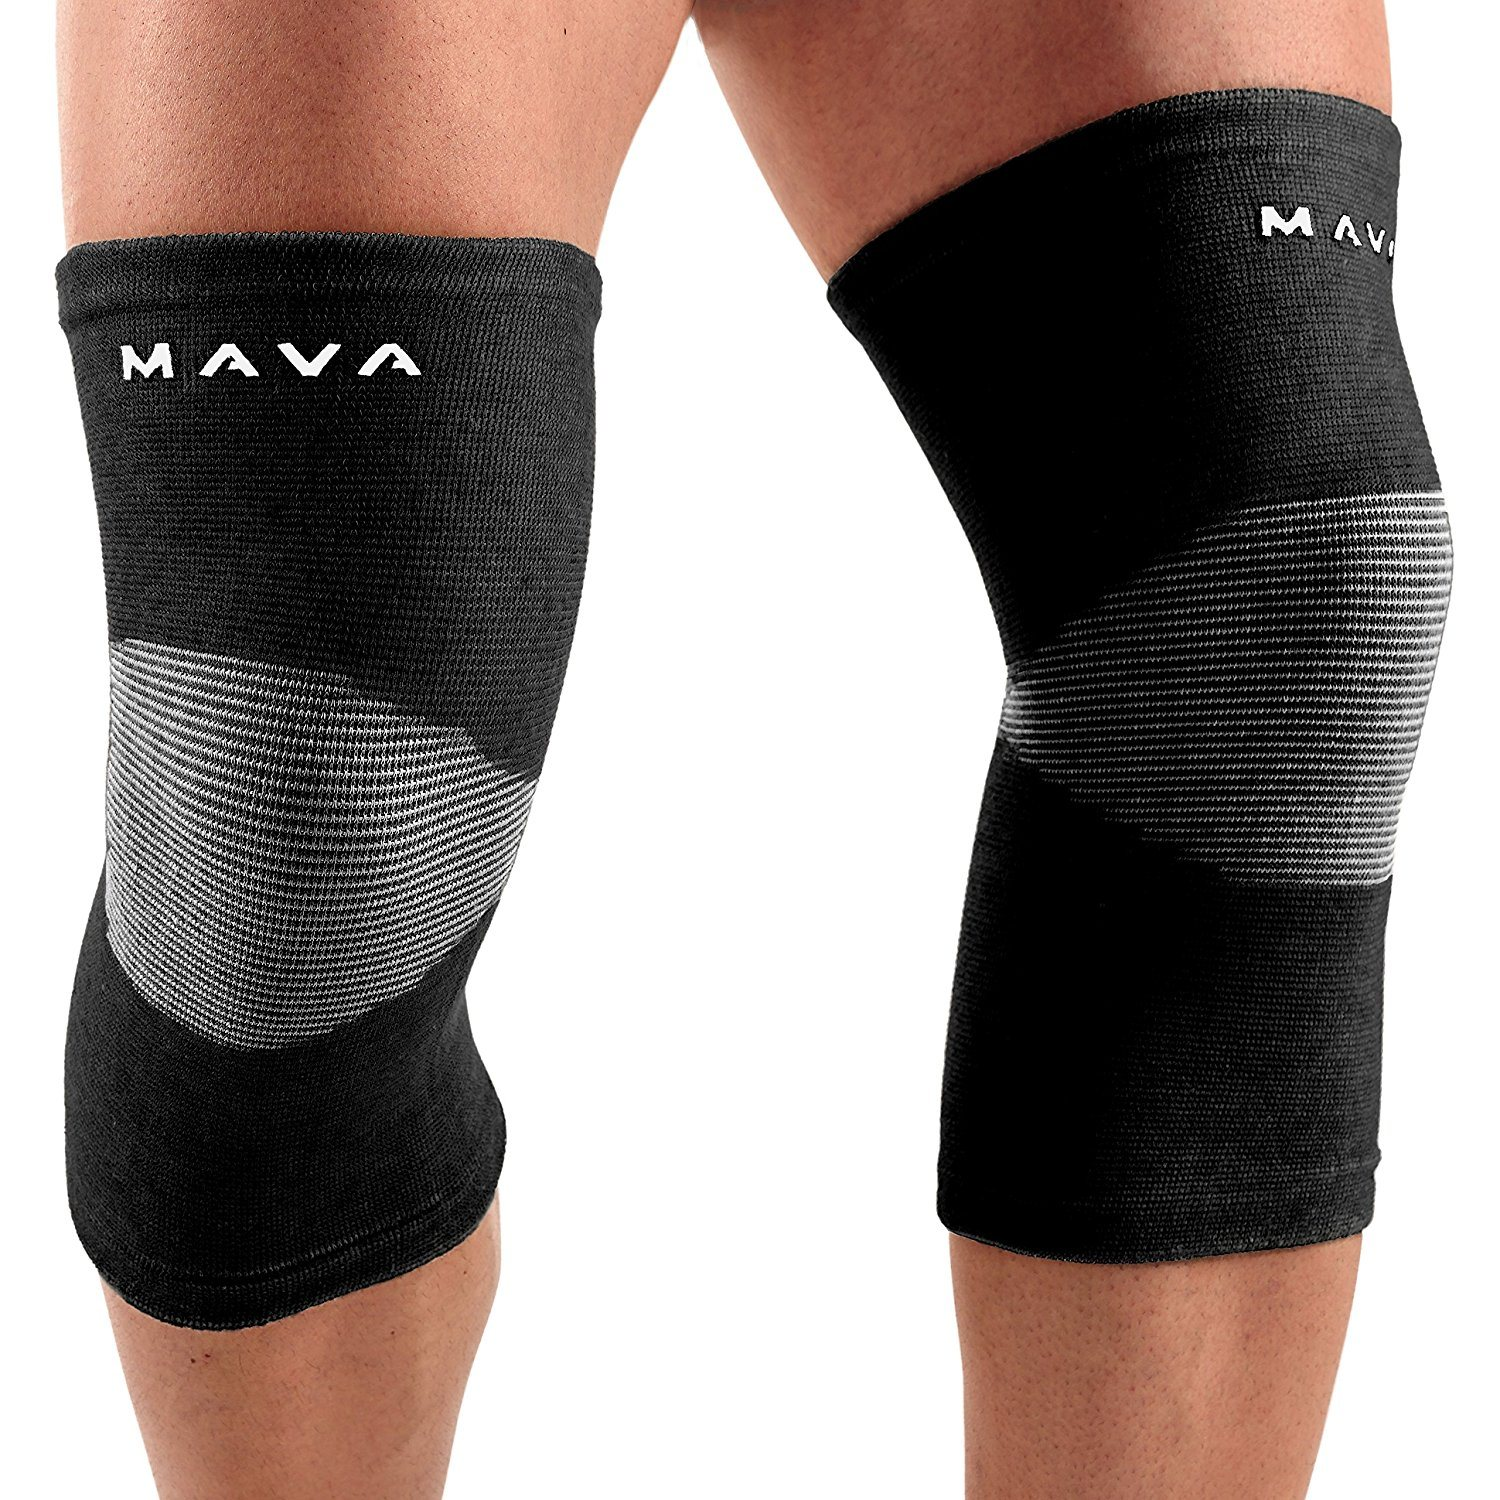 Best Knee Brace for Running - Mava Sports Knee Support Sleeves